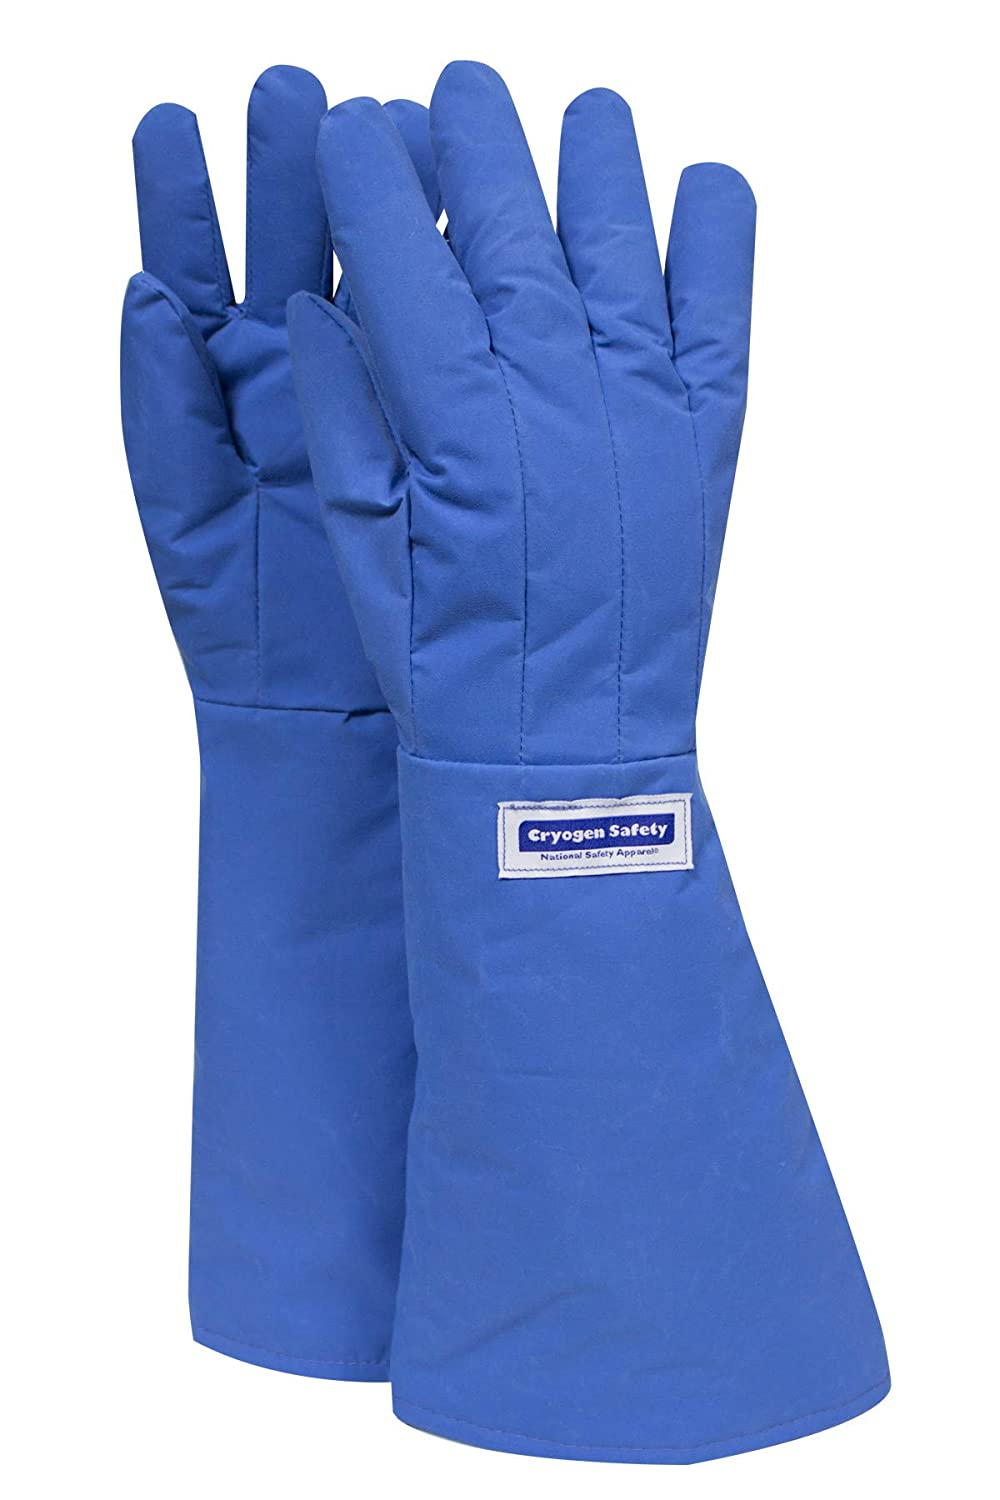 National Safety Apparel G99CRBEPXLEL Nylon Taslan and PTFE Elbow Waterproof Safety Glove, Cryogenic, 17 - 18 Length, X-Large, Blue by National Safety Apparel Inc  B0078R56RU